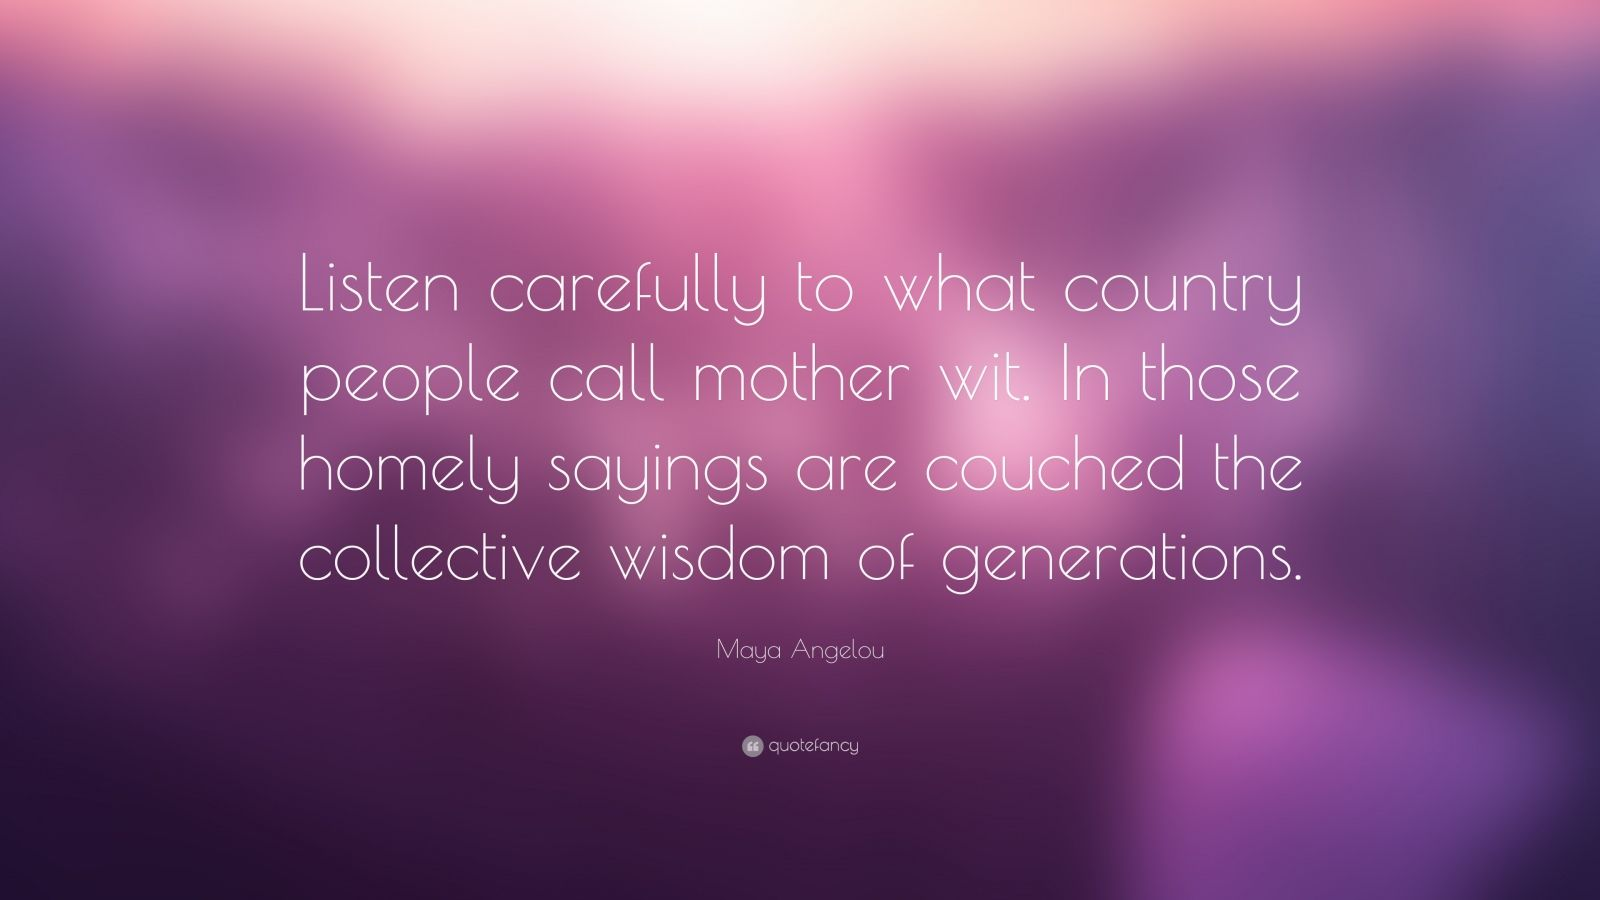 """Maya Angelou Quote: """"Listen carefully to what country people call mother wit. In those homely sayings are couched the collective wisdom of generations."""""""